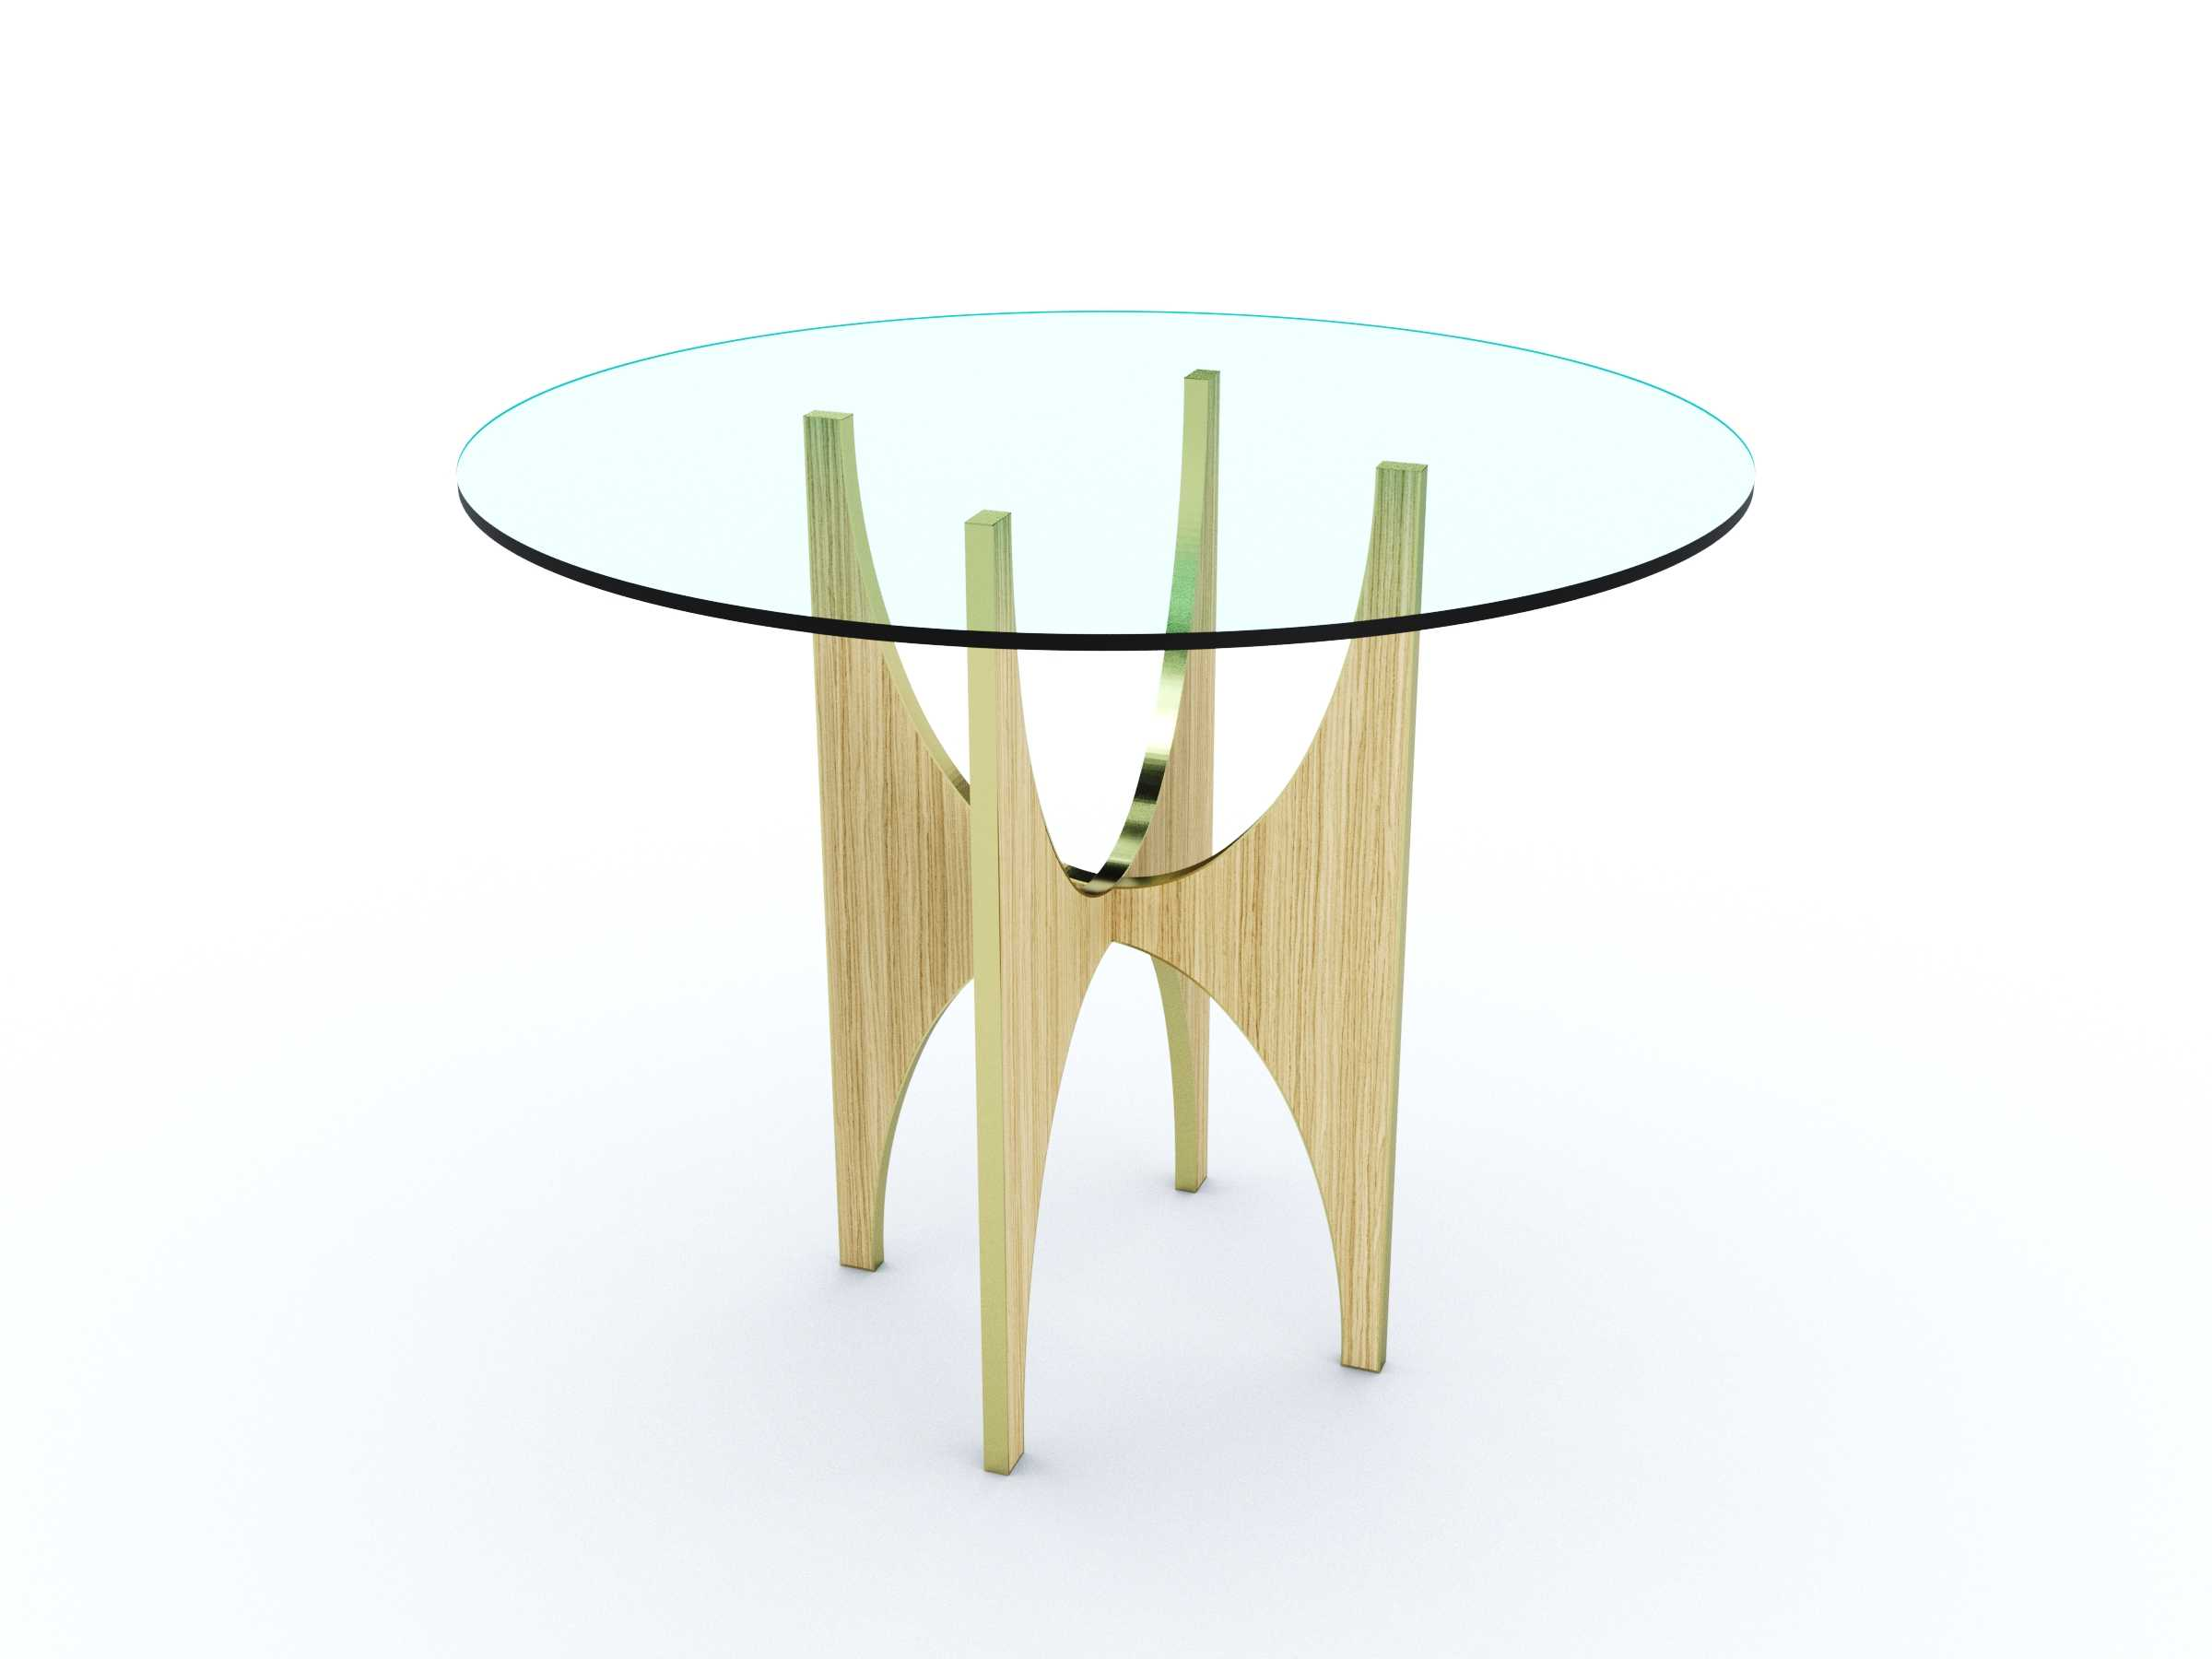 6.4_ARC-ROUND-TABLE-LIGHT_1800x2400